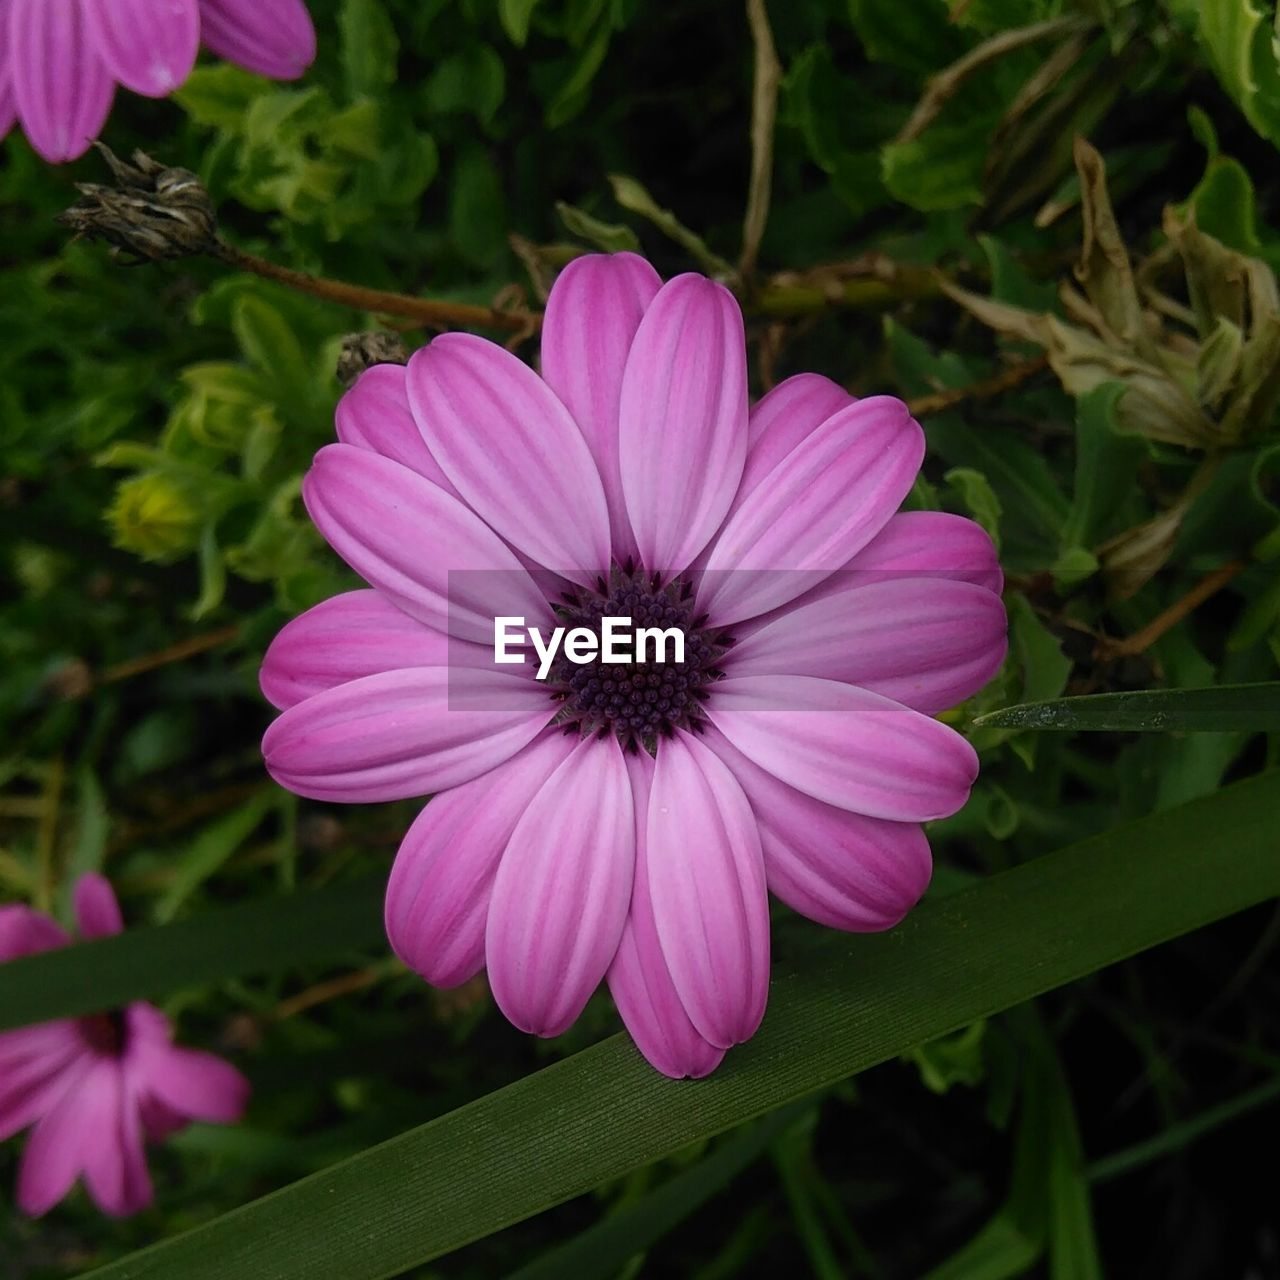 flower, petal, pink color, fragility, plant, freshness, growth, flower head, beauty in nature, nature, blooming, purple, outdoors, focus on foreground, day, no people, close-up, osteospermum, eastern purple coneflower, petunia